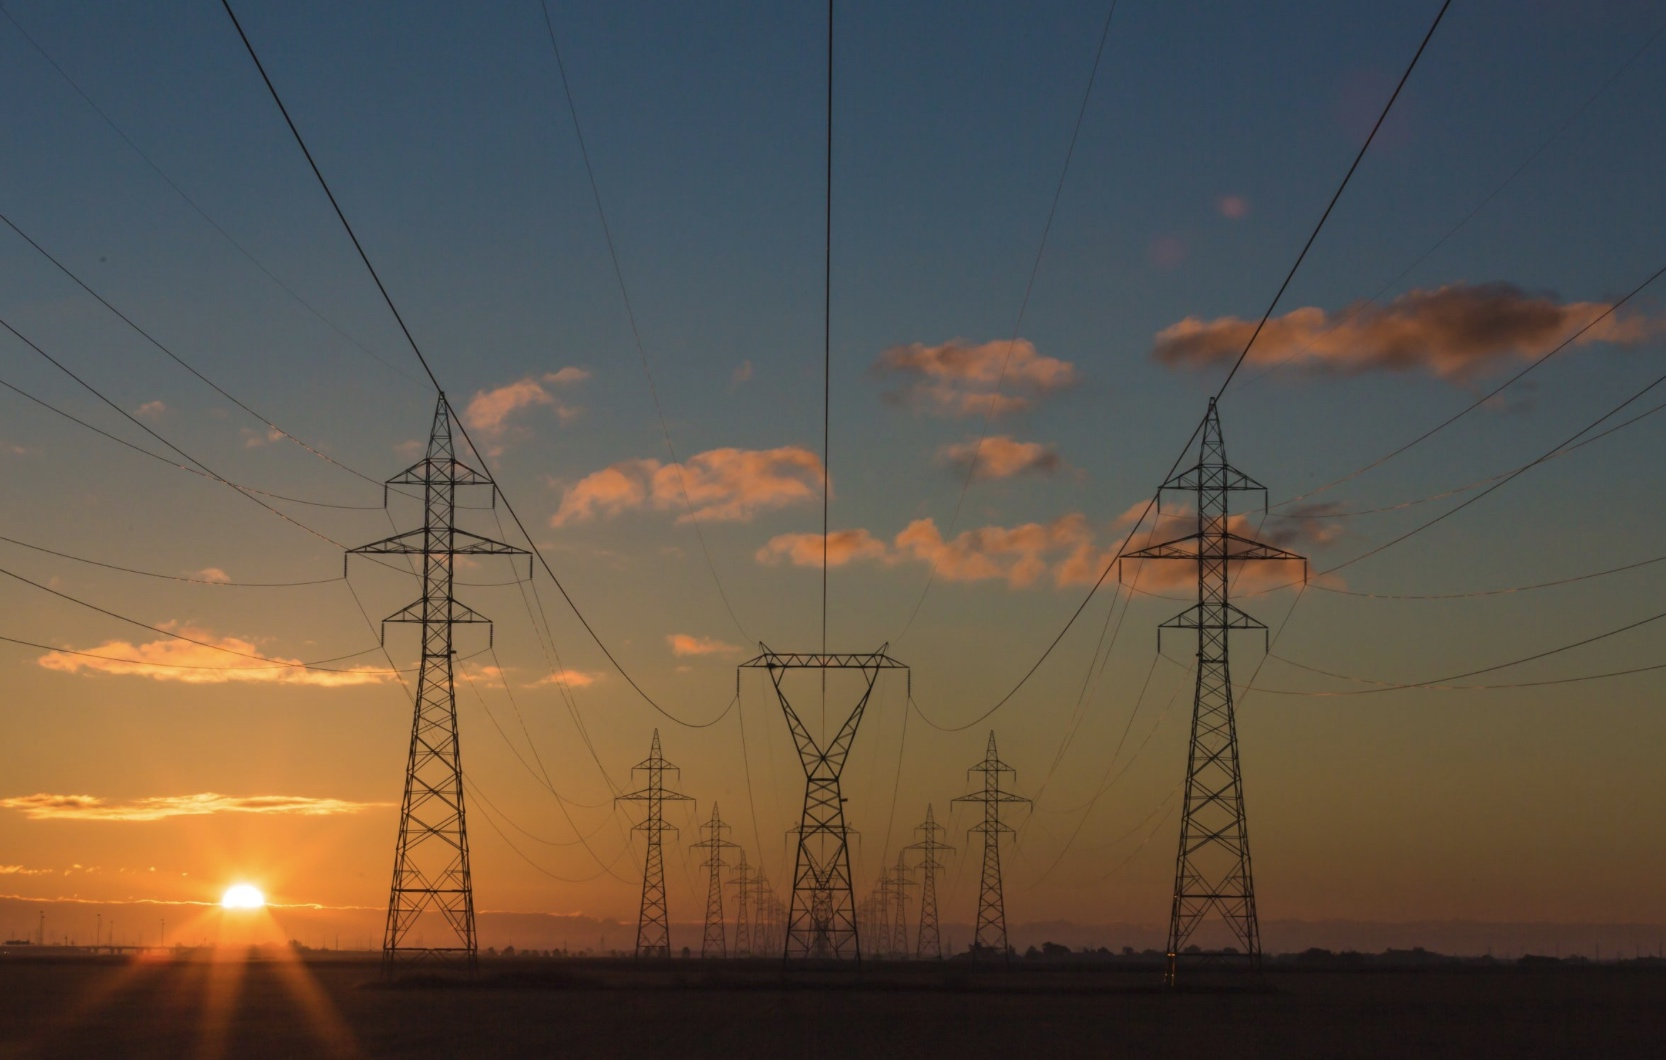 An image of overhead utilities, power lines and towers at sunset